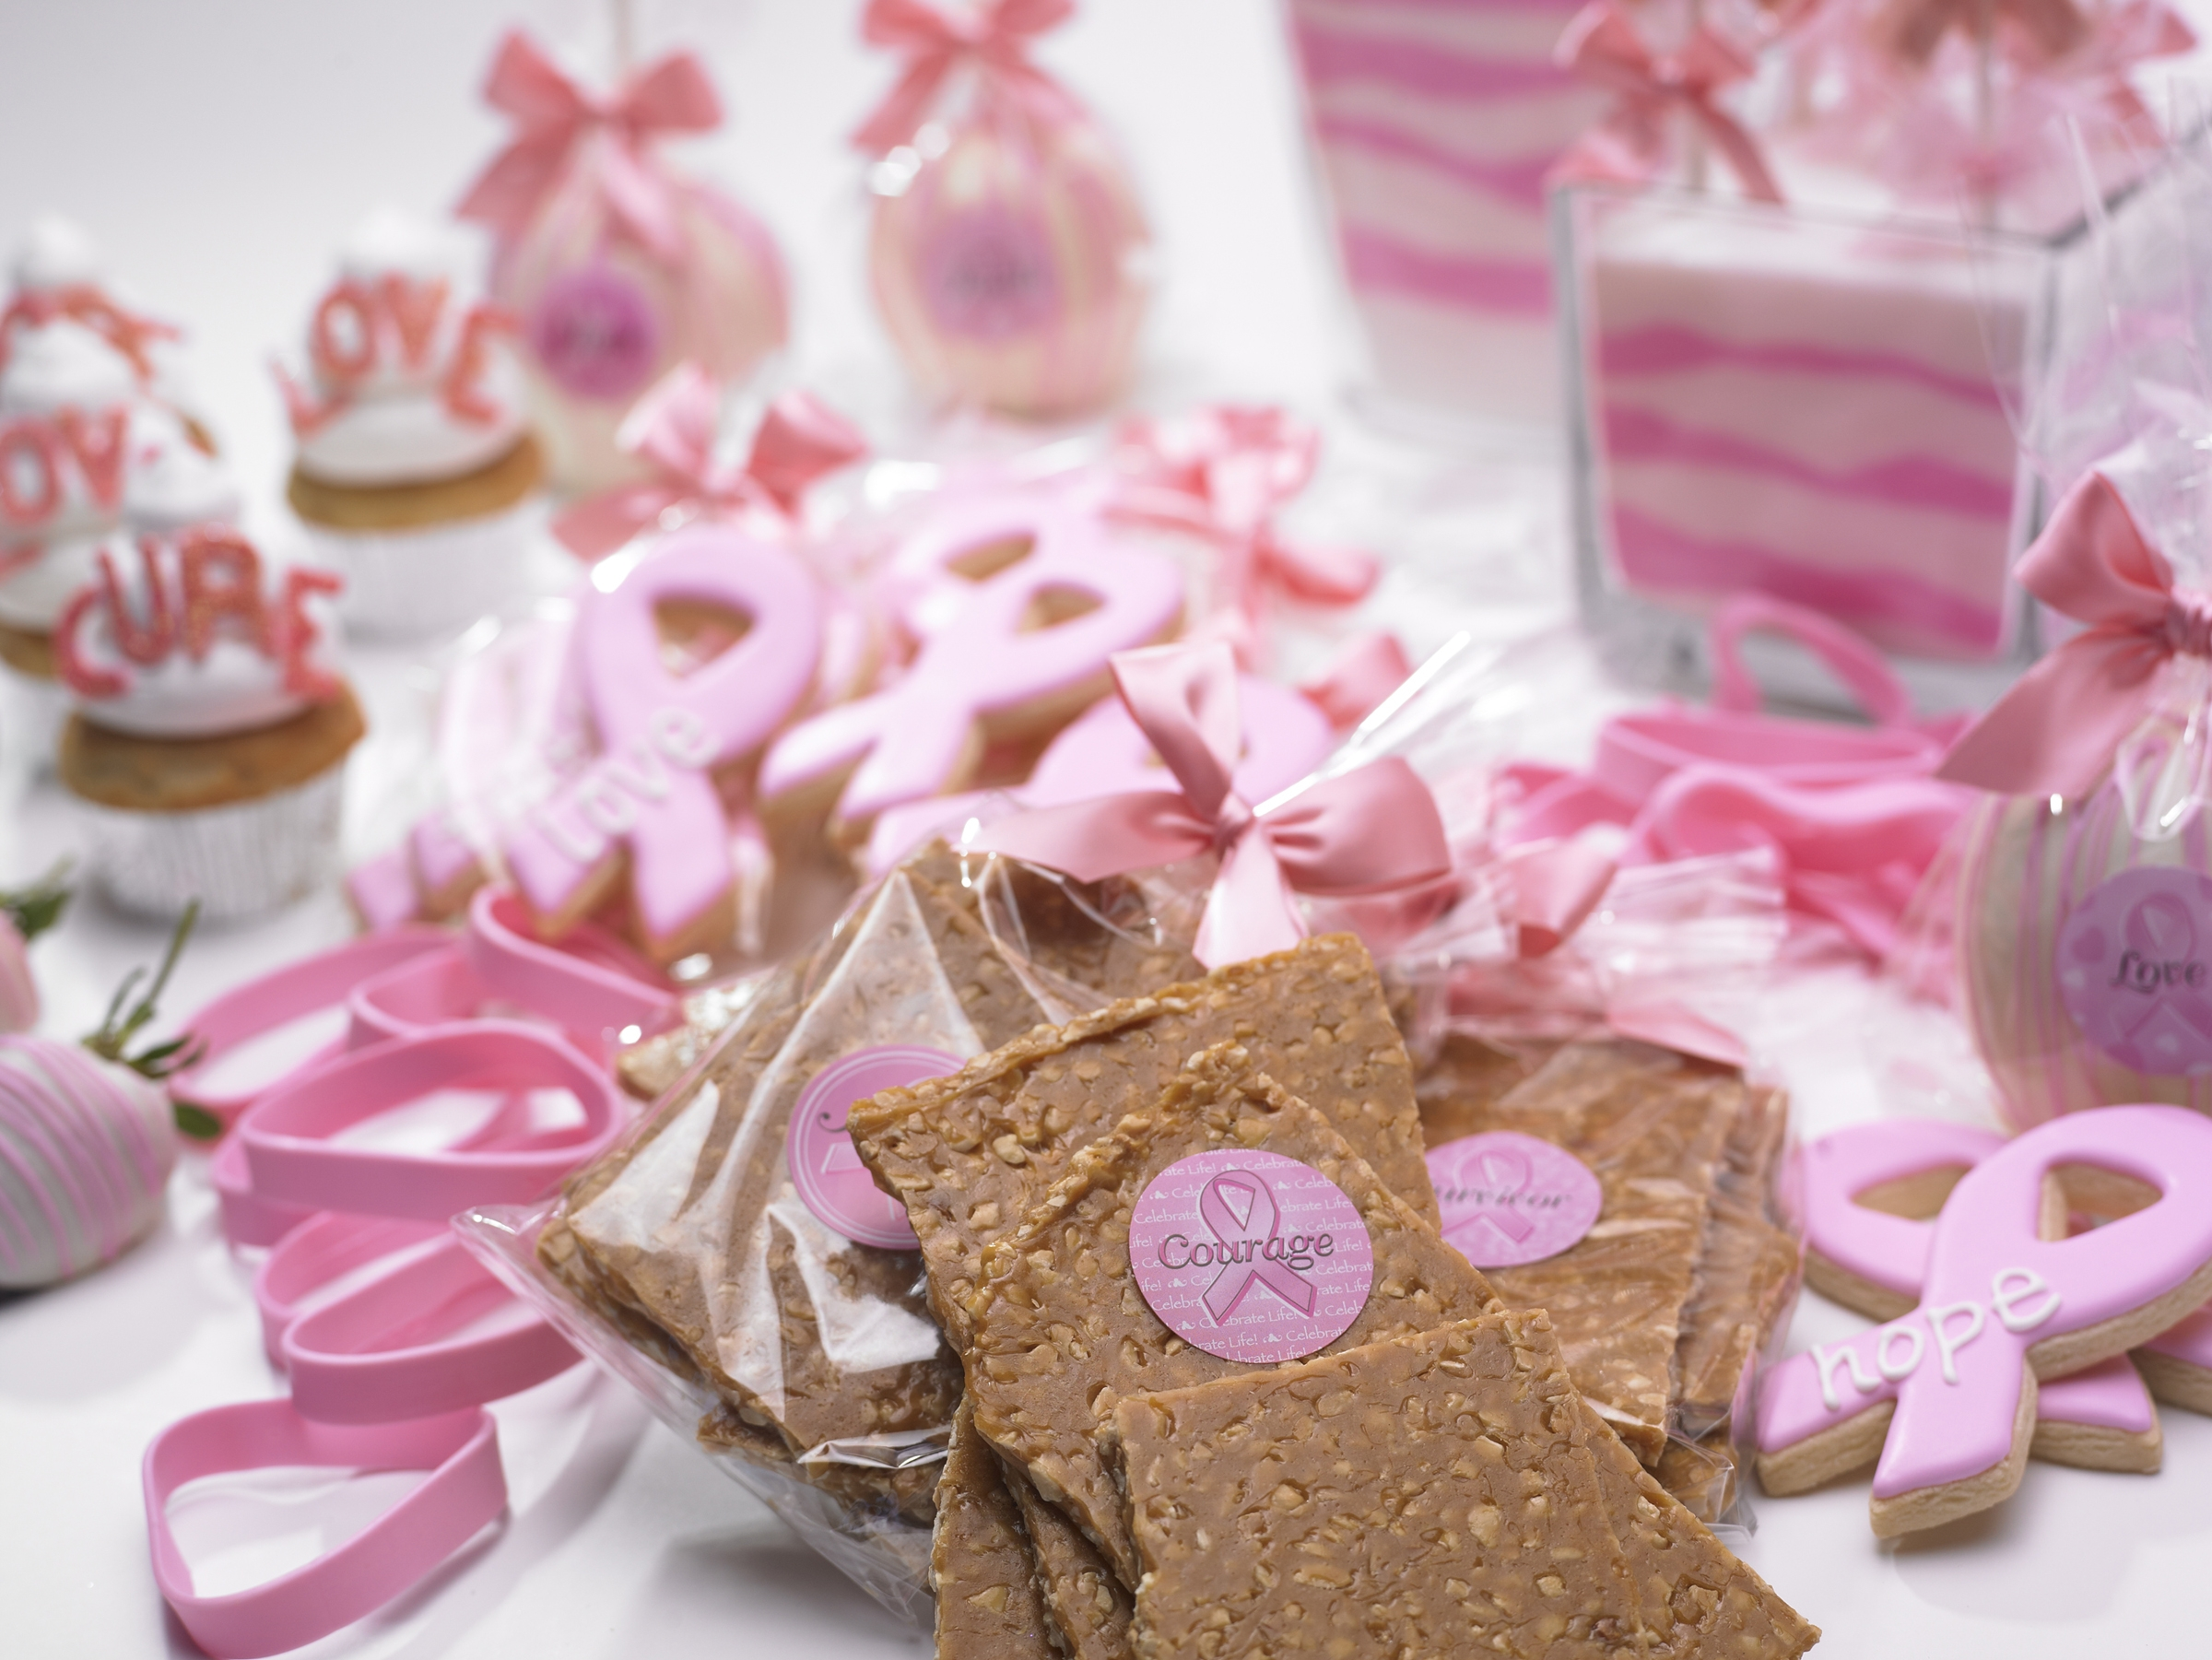 Project Pink fundraiser returns for third year at Station Casinos ...